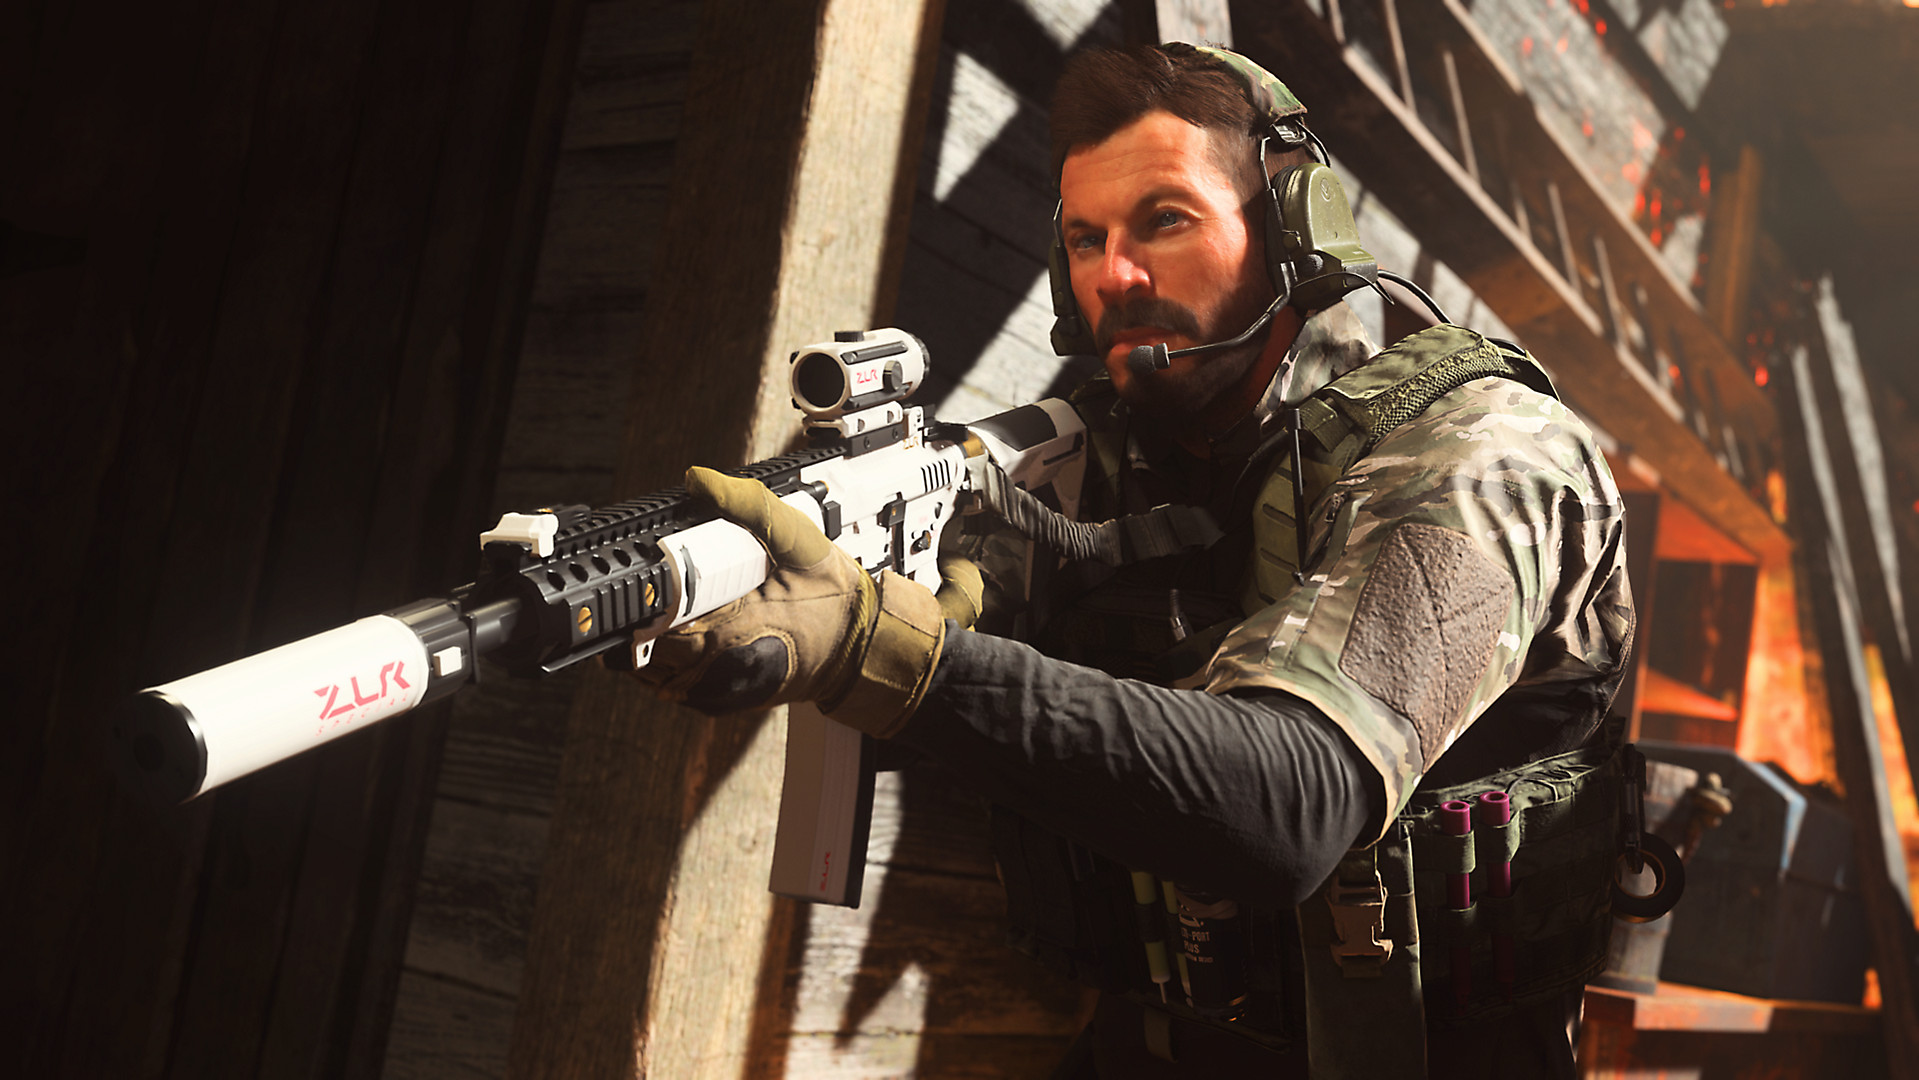 Activision confirms that Treyarch and Raven are making the new Call of Duty